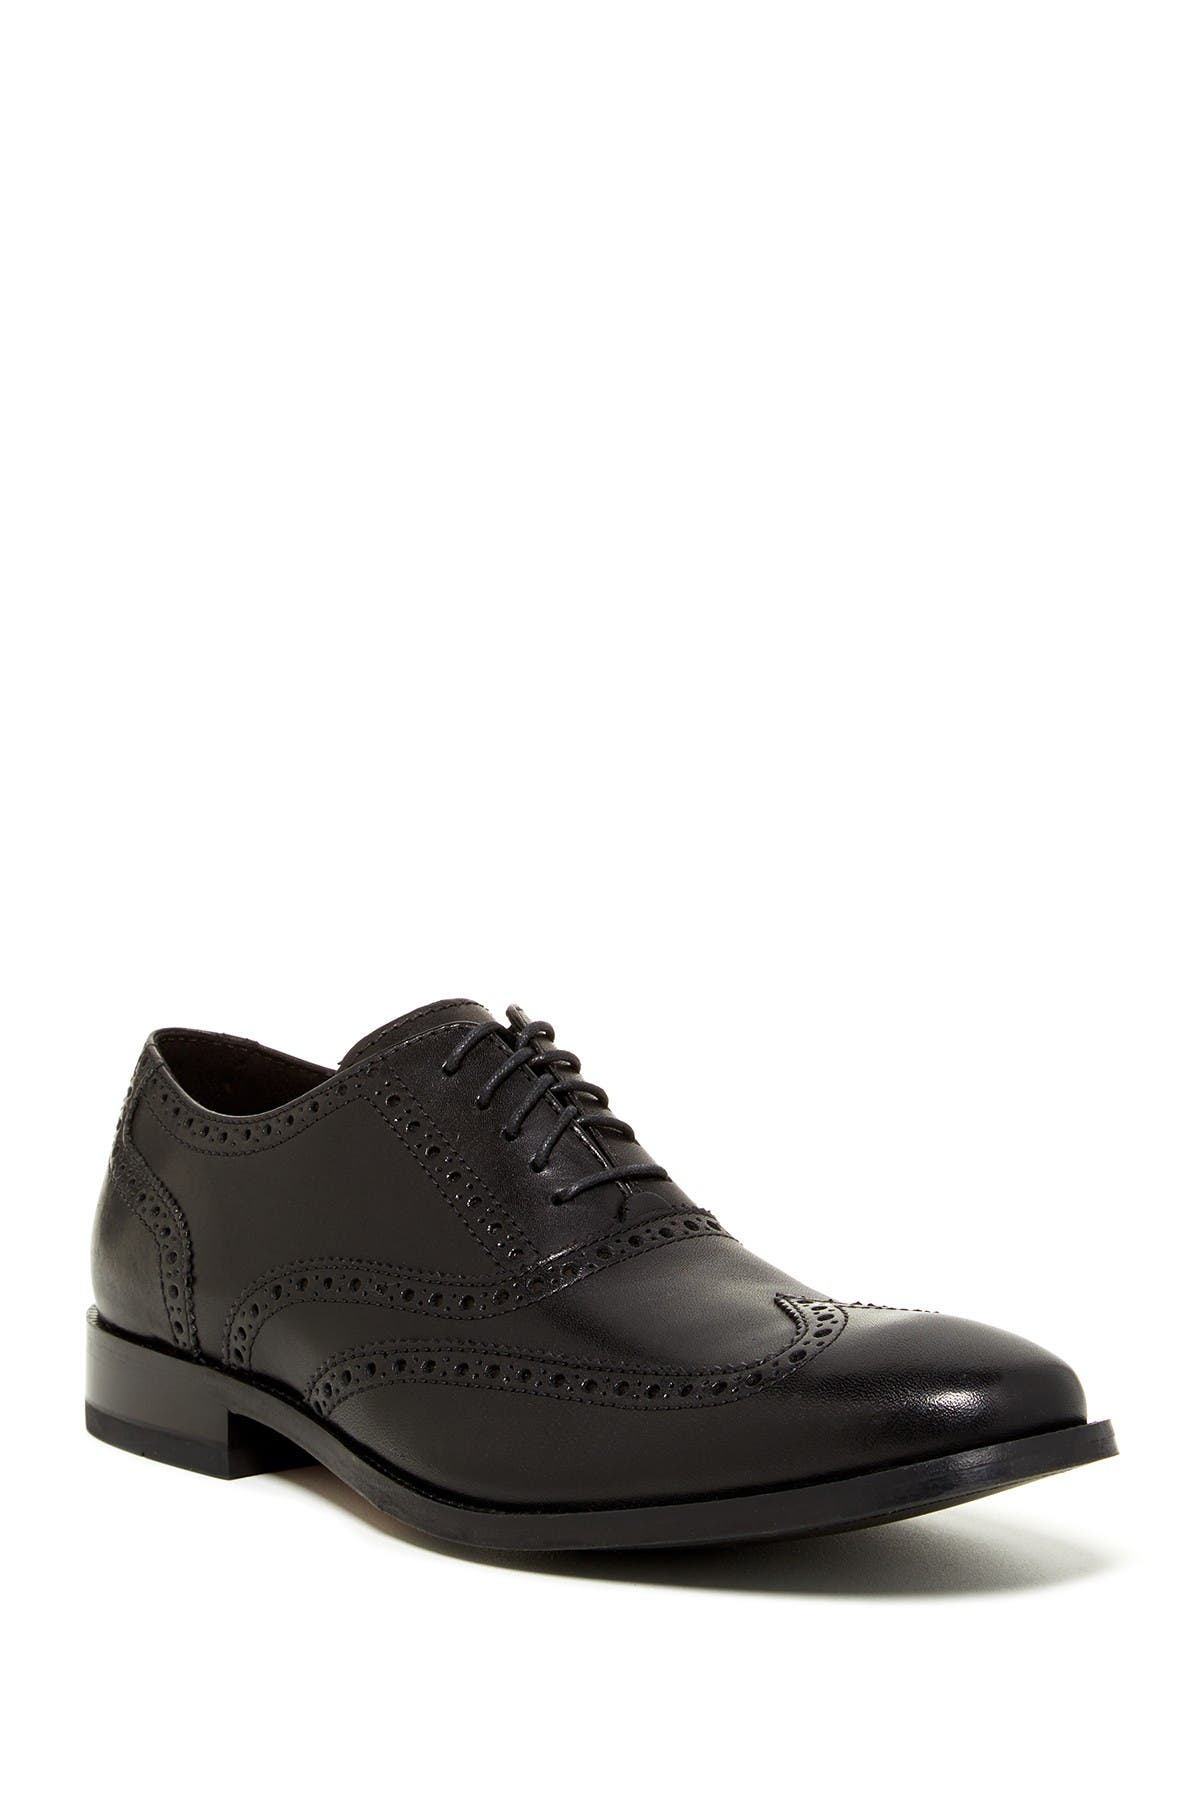 Image of Cole Haan Williams Wing II Oxford - Wide Width Available